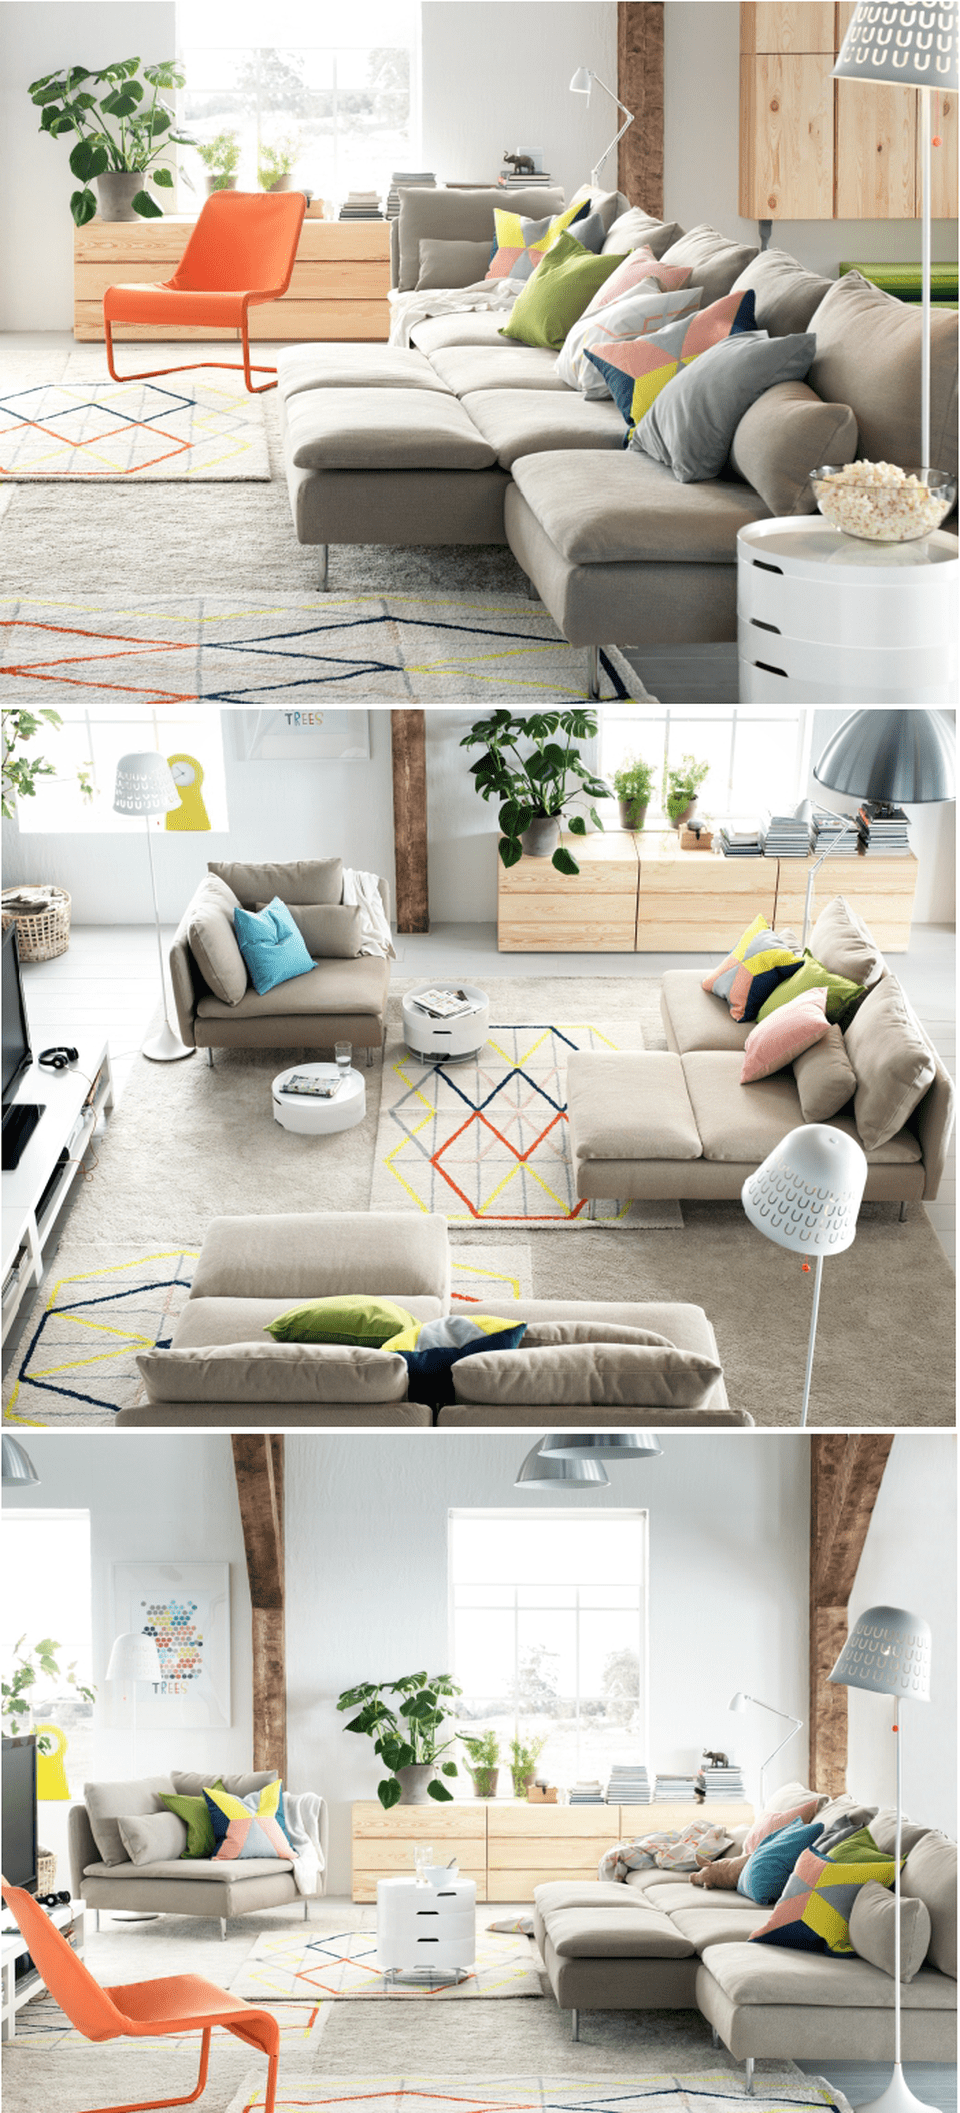 One room apartment layout design ideas 2